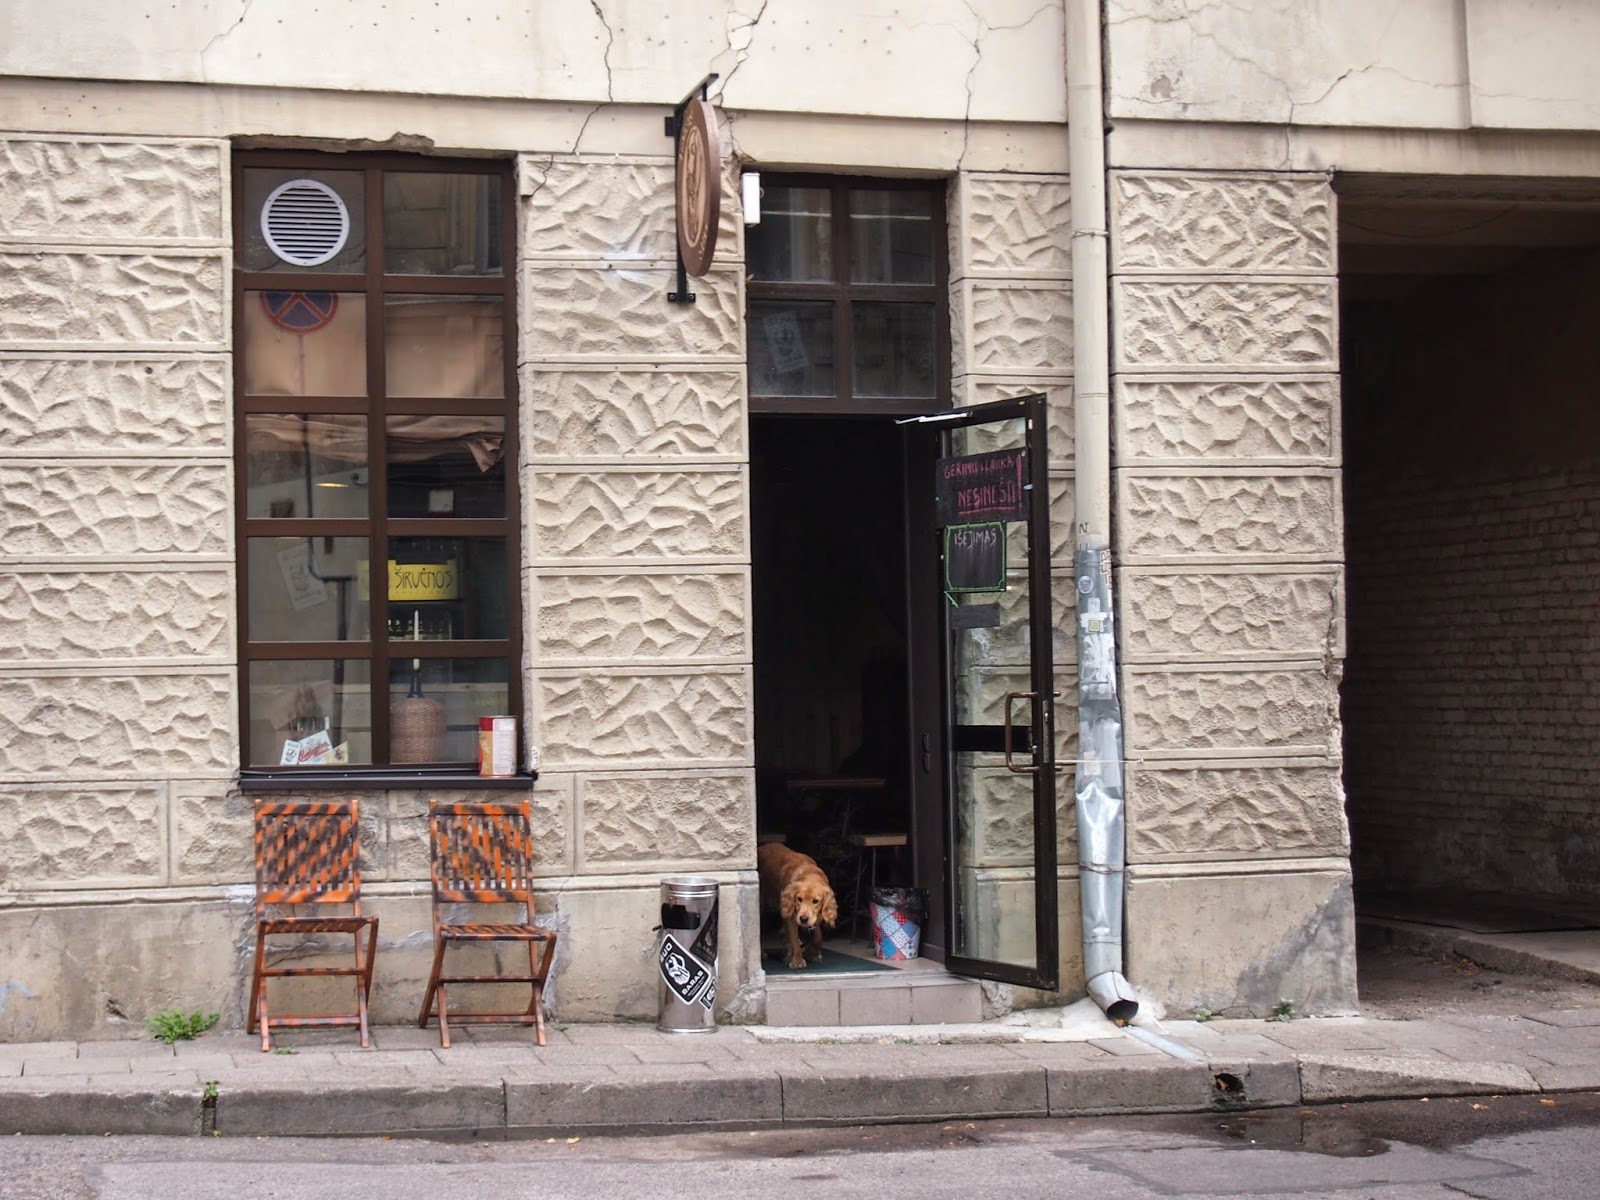 A bar front with a dog in Vilnius